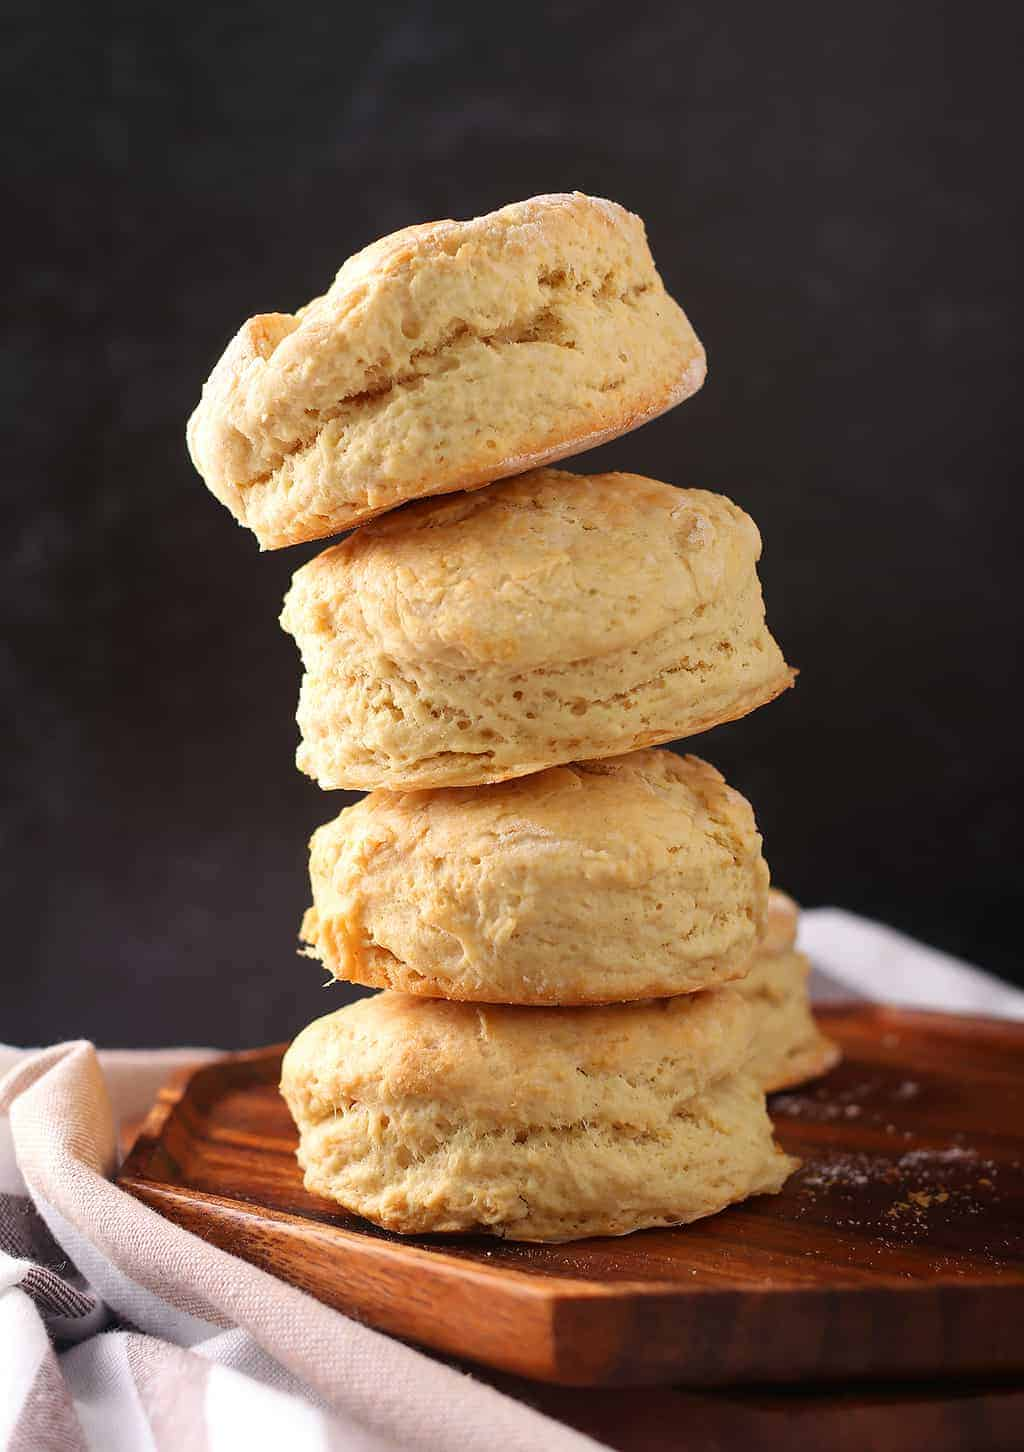 Stack of finished biscuits with a black background